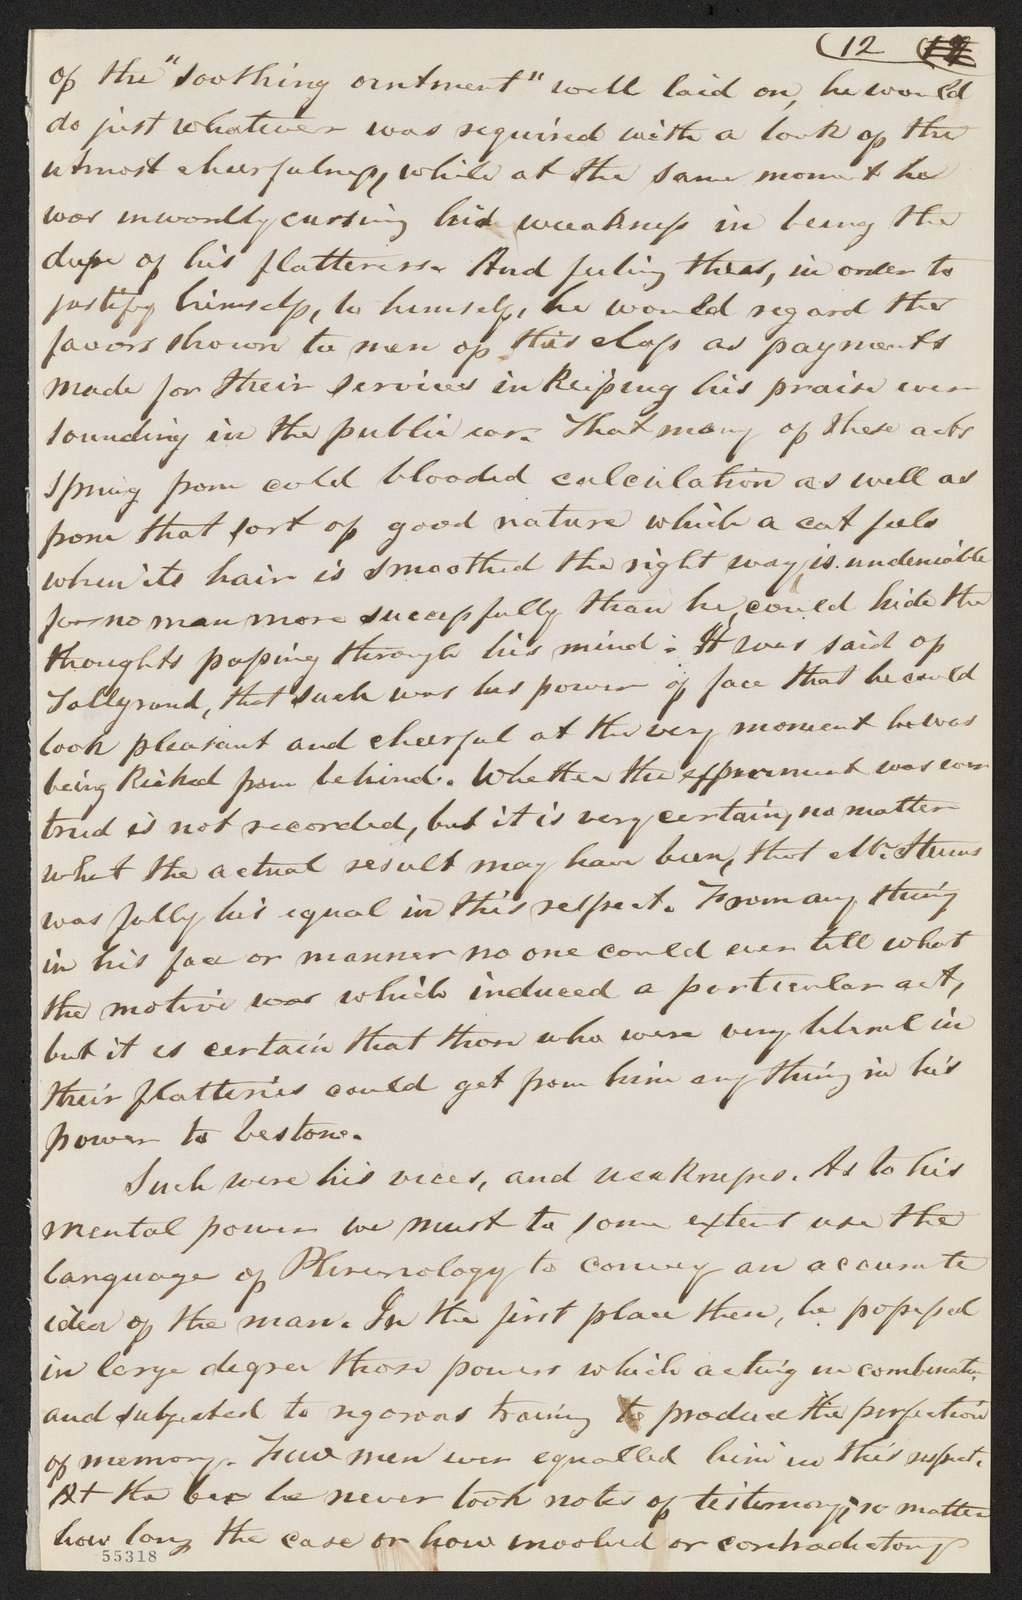 Thaddeus Stevens Papers: Miscellany, 1811-1927; Biographical sketches; Stevens, Thaddeus, sketches and reminiscences, circa 1868-1927, undated